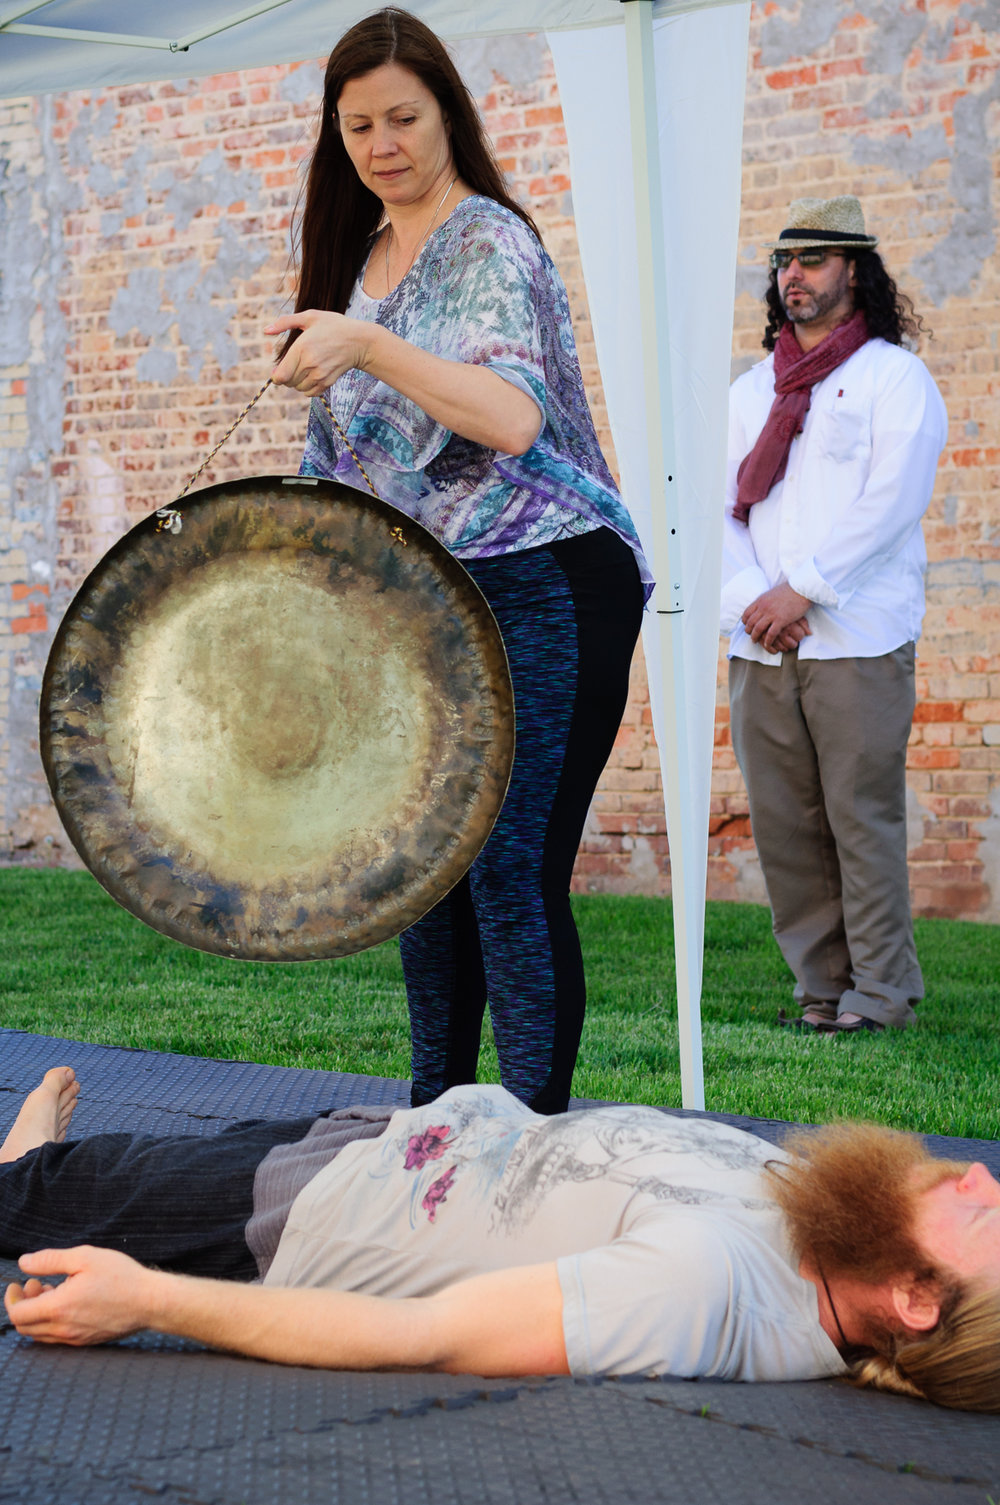 Barbara Cole and Jason Chaussee during their Self-Love Gong Meditation at the Pocket Park.